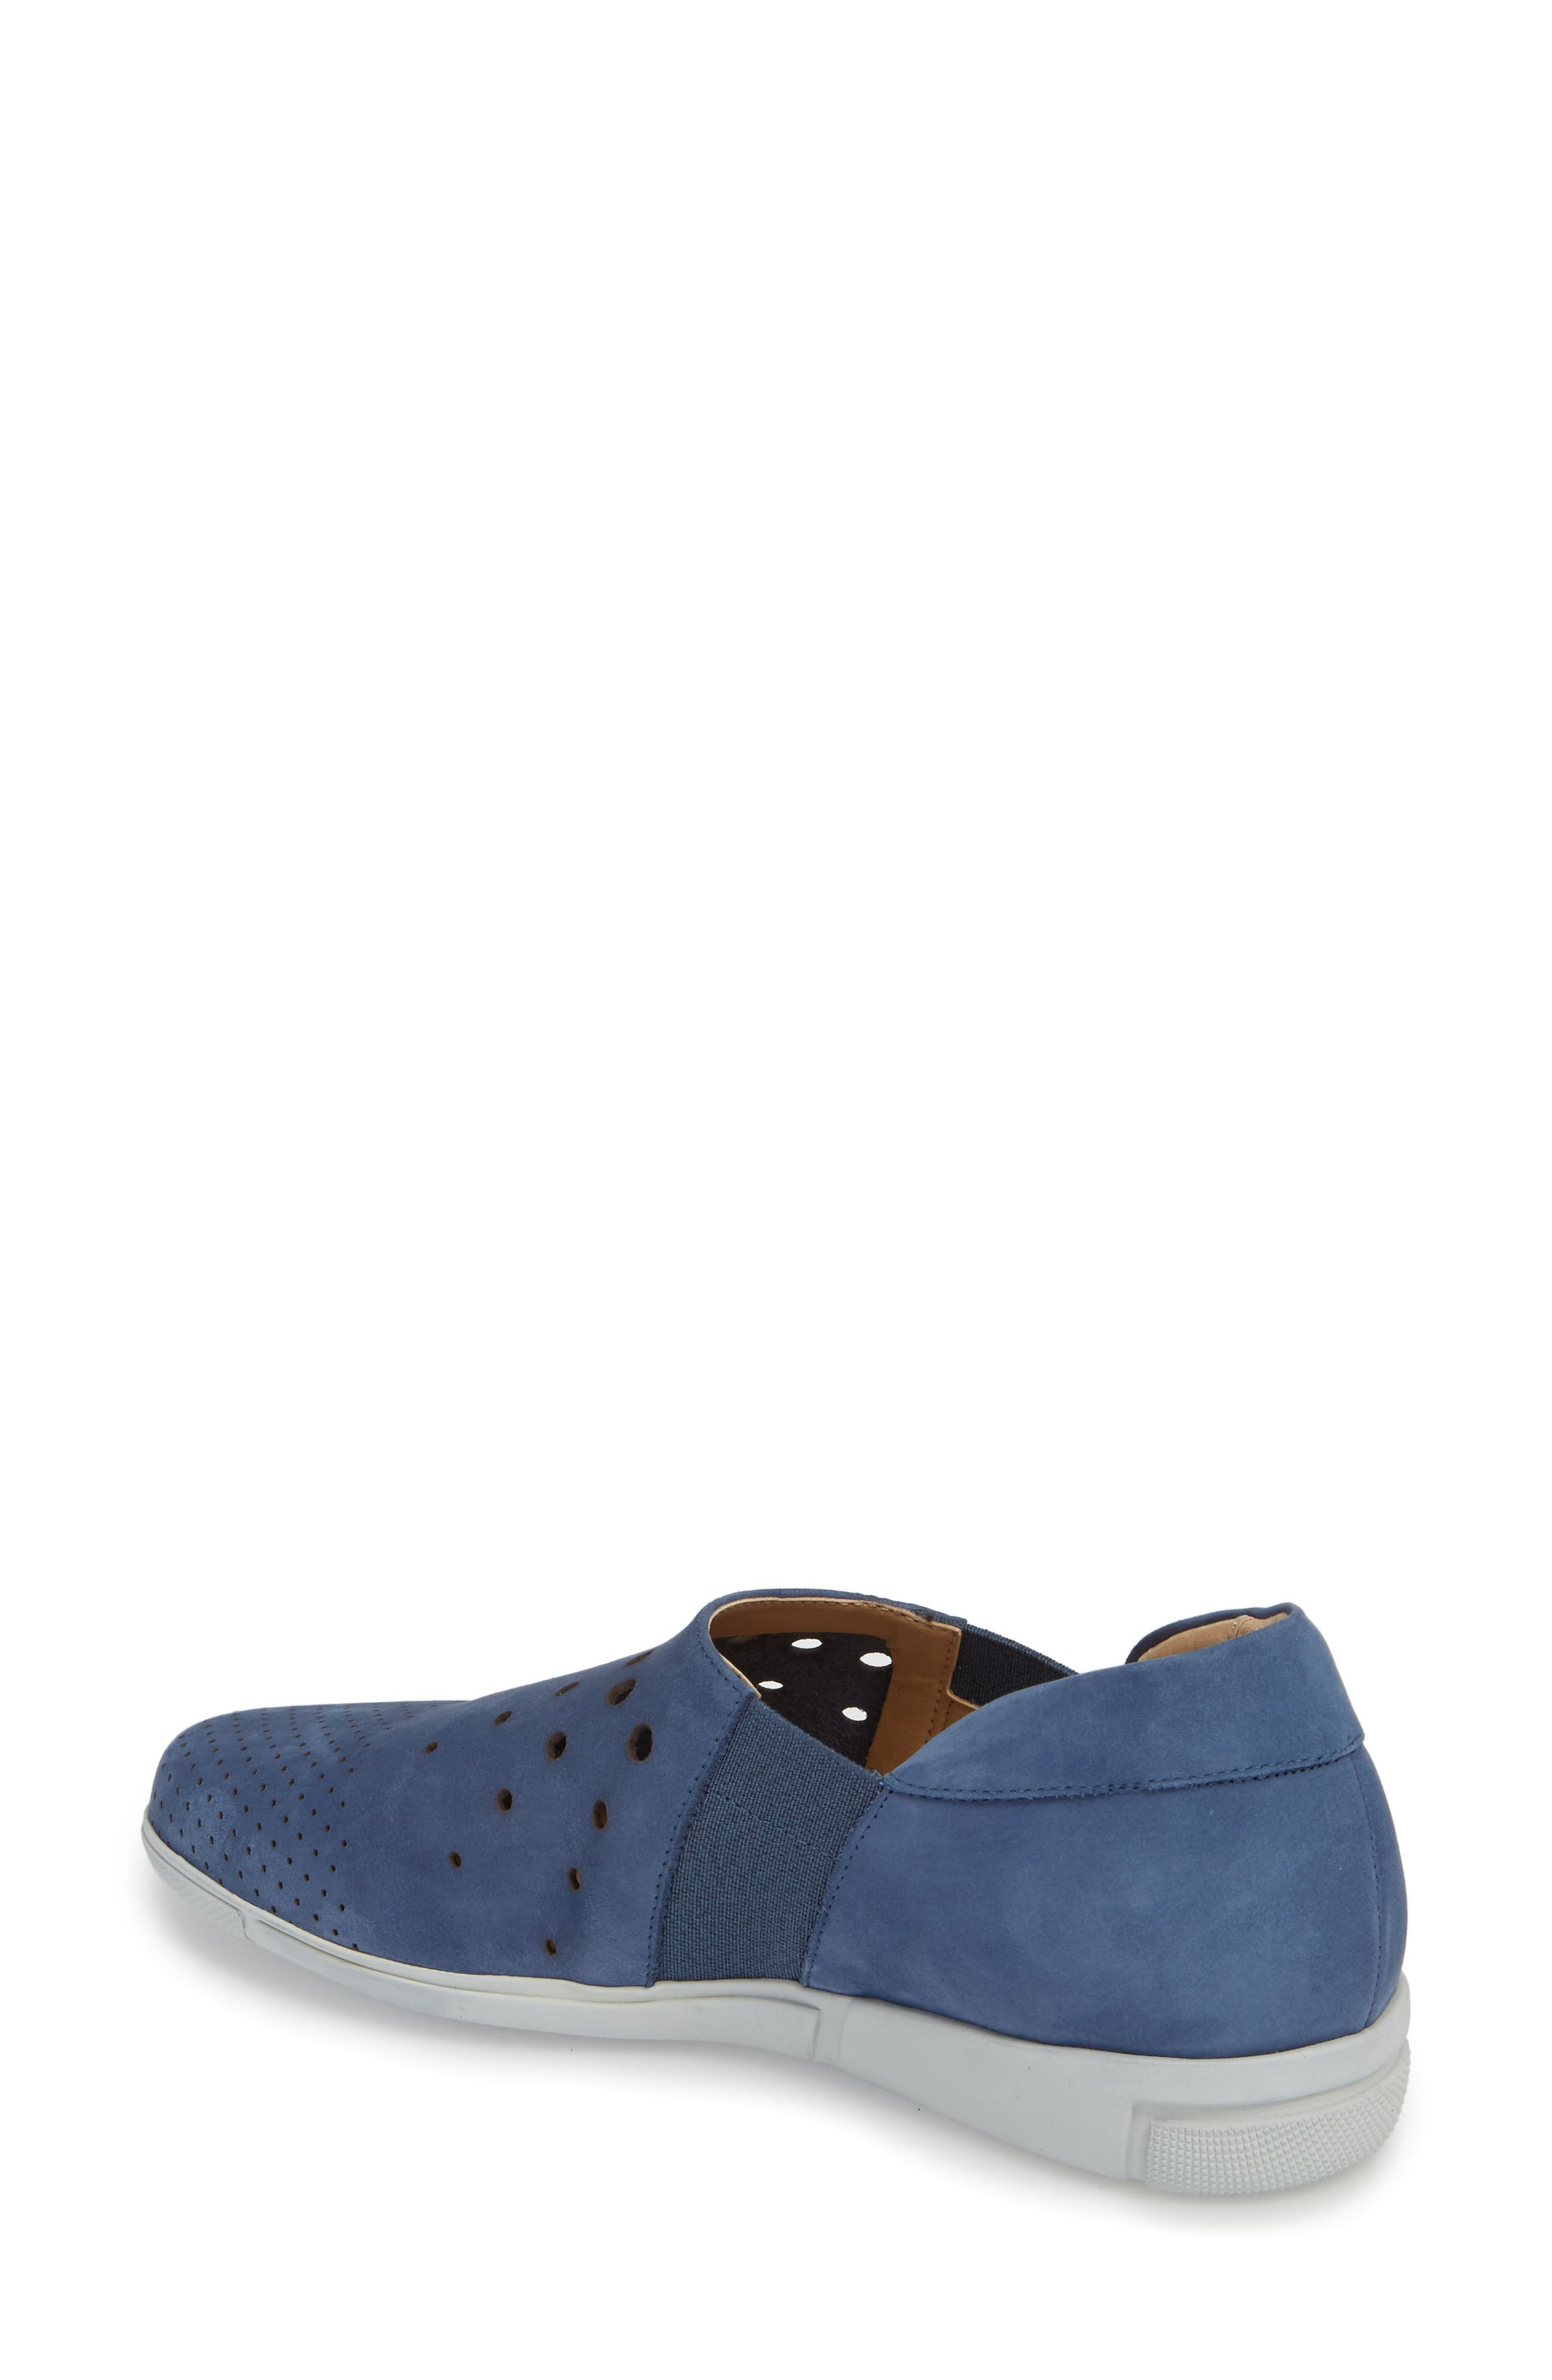 Ditty Perforated Slip-On,                             Alternate thumbnail 2, color,                             Jeans Soft Nubuck